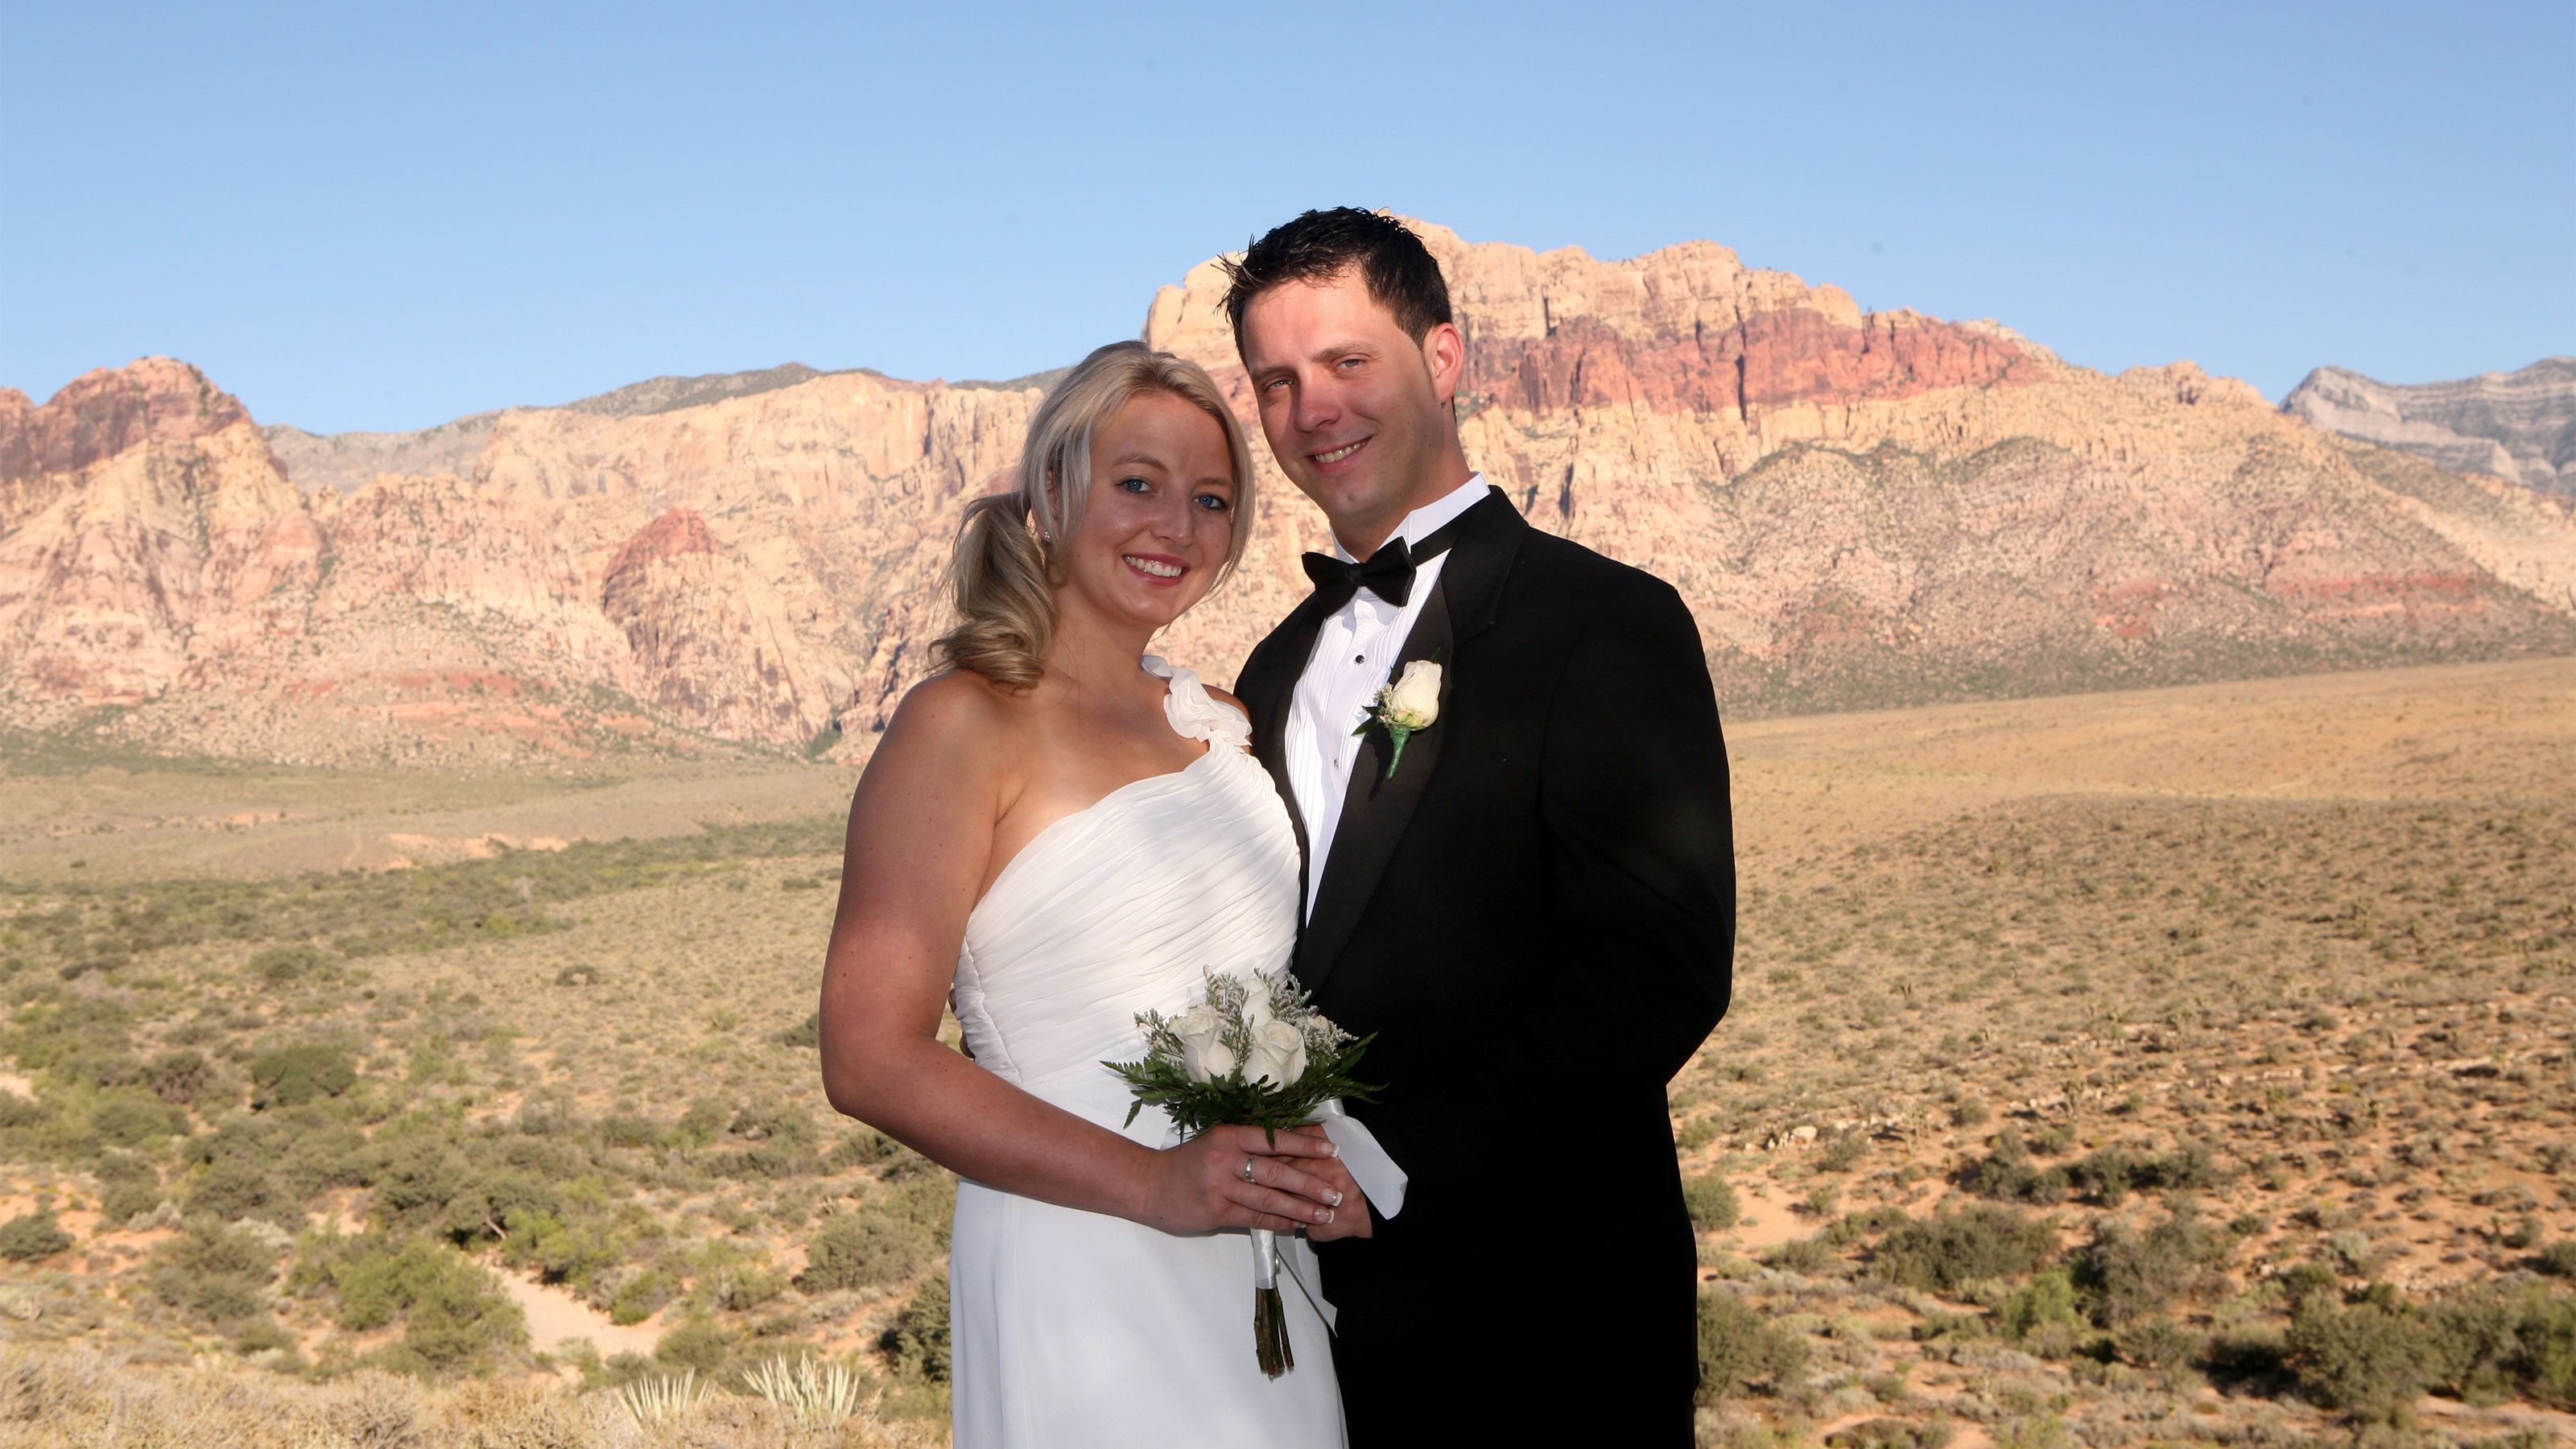 Beautiful bride and groom pose for a photo with the Red Rock Canyon in the background